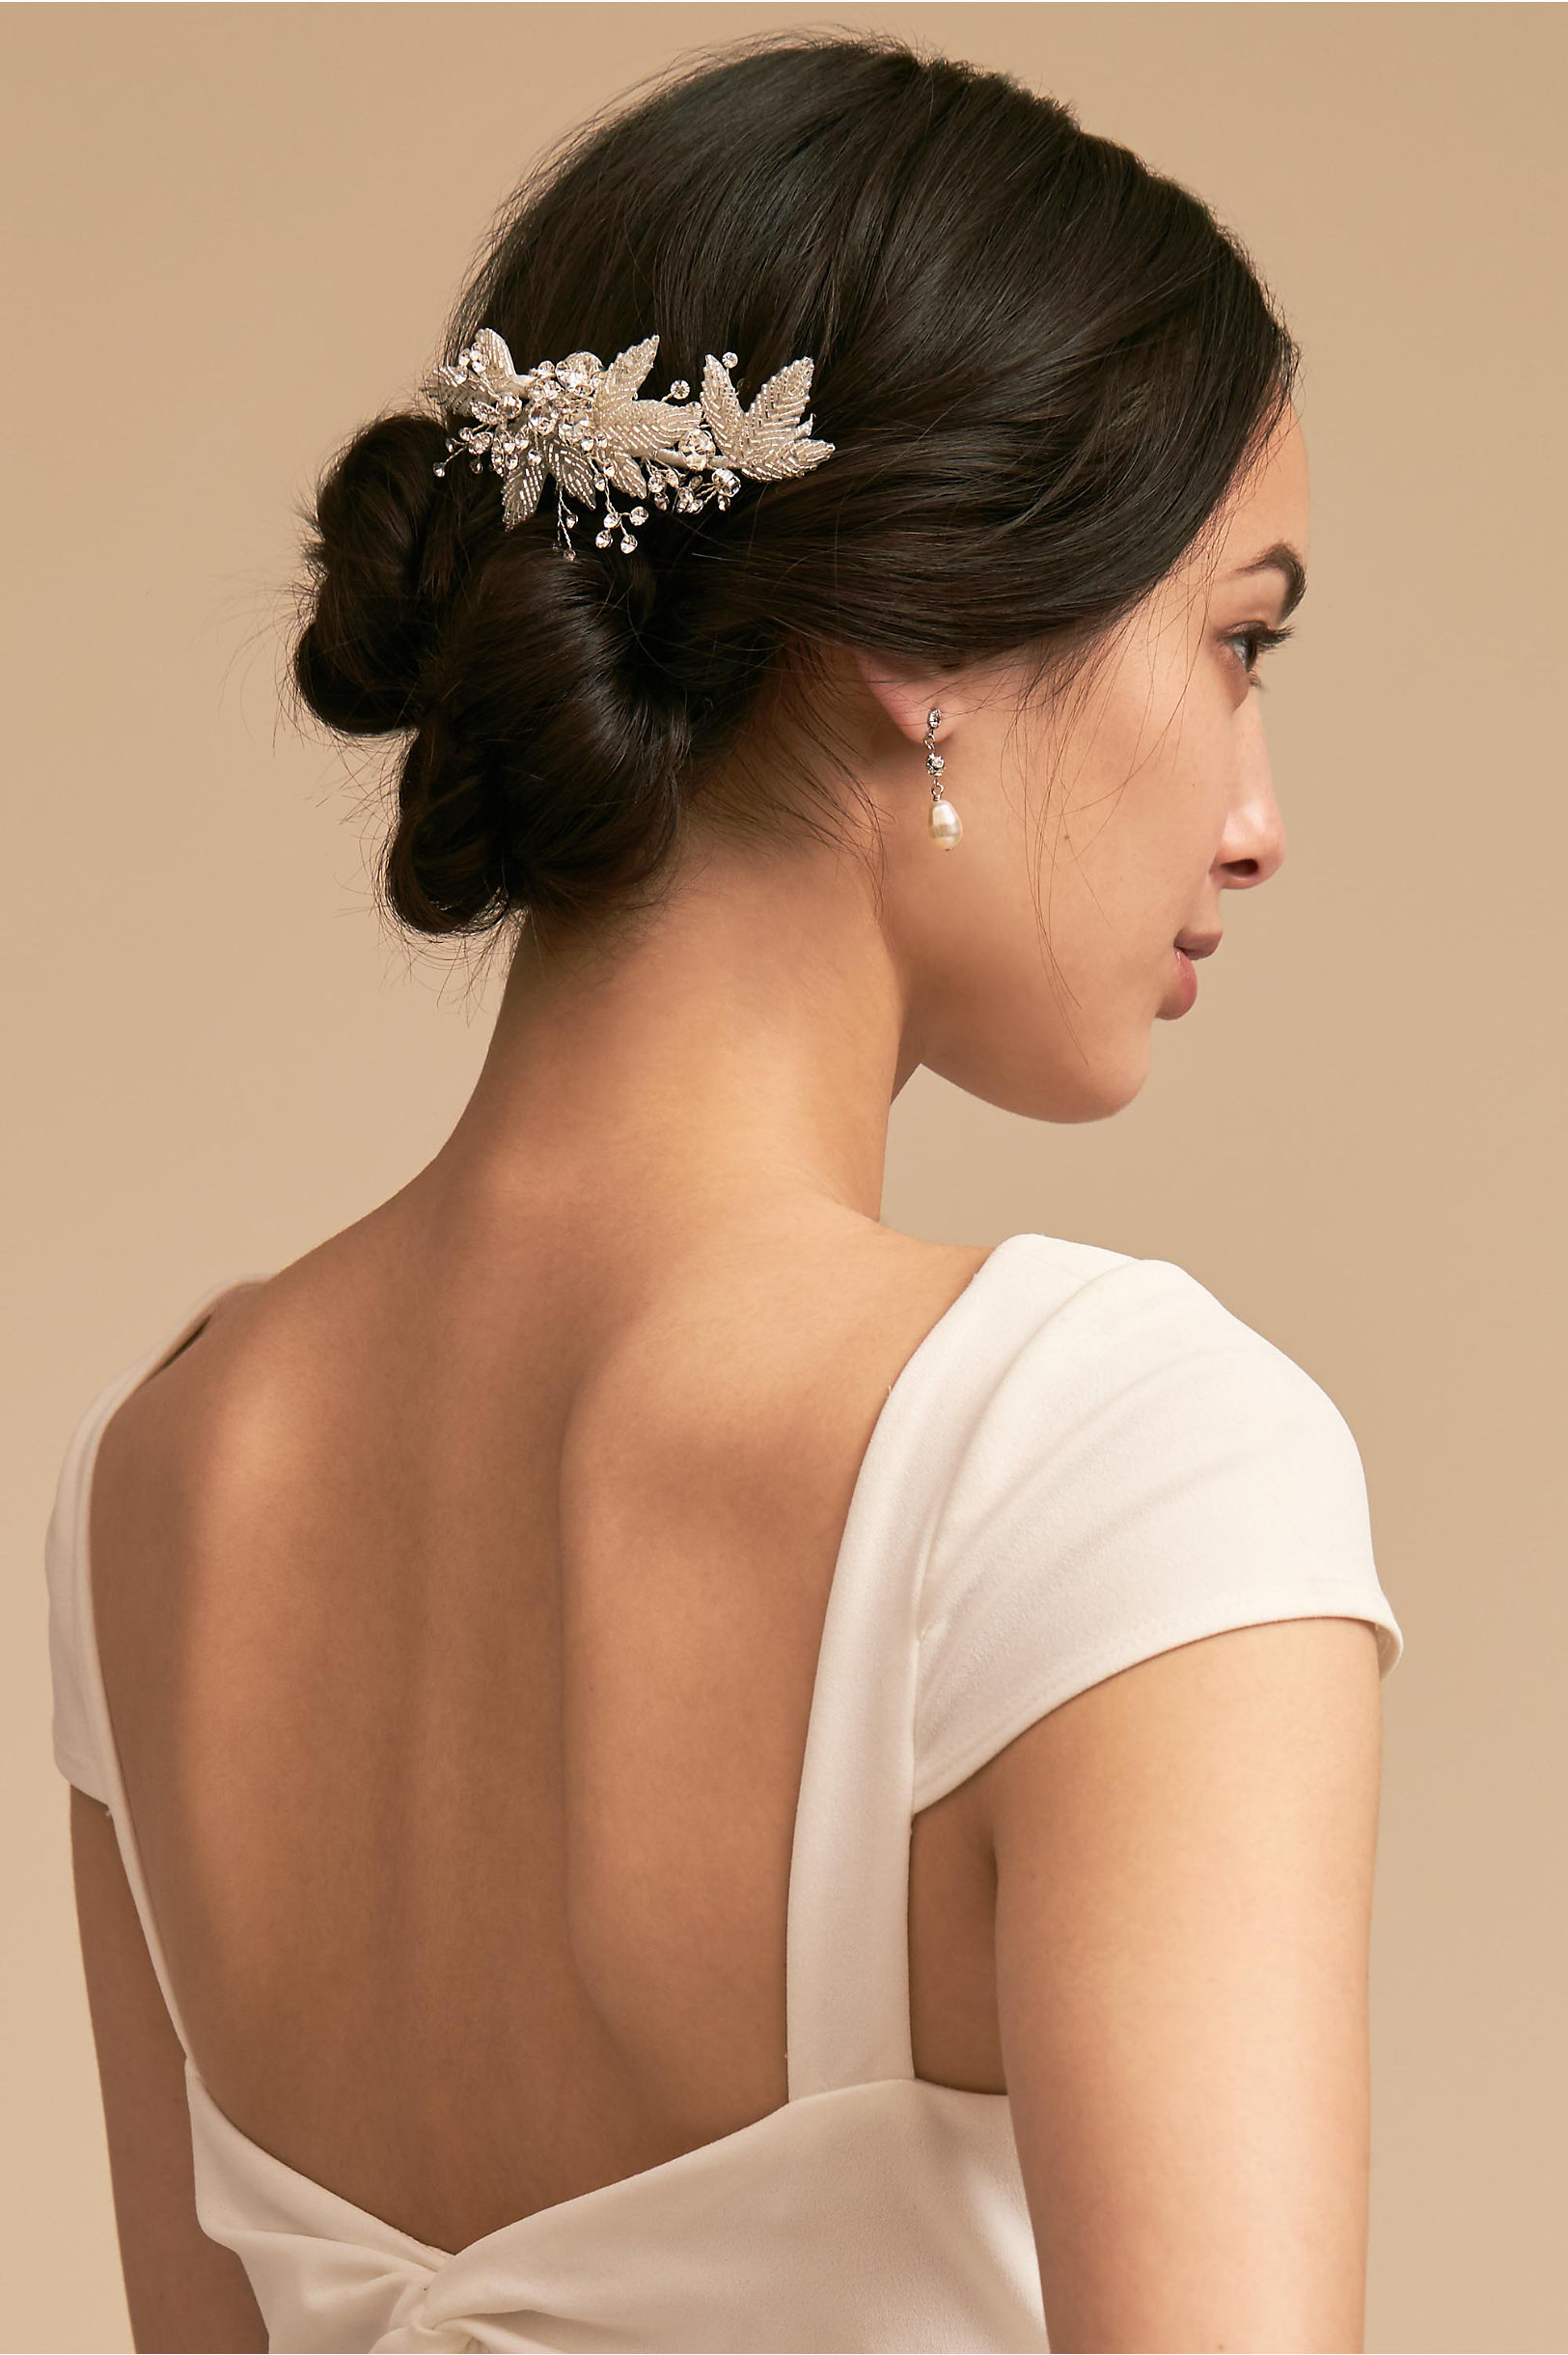 wedding hair accessories | bohemian hair accessories | bhldn